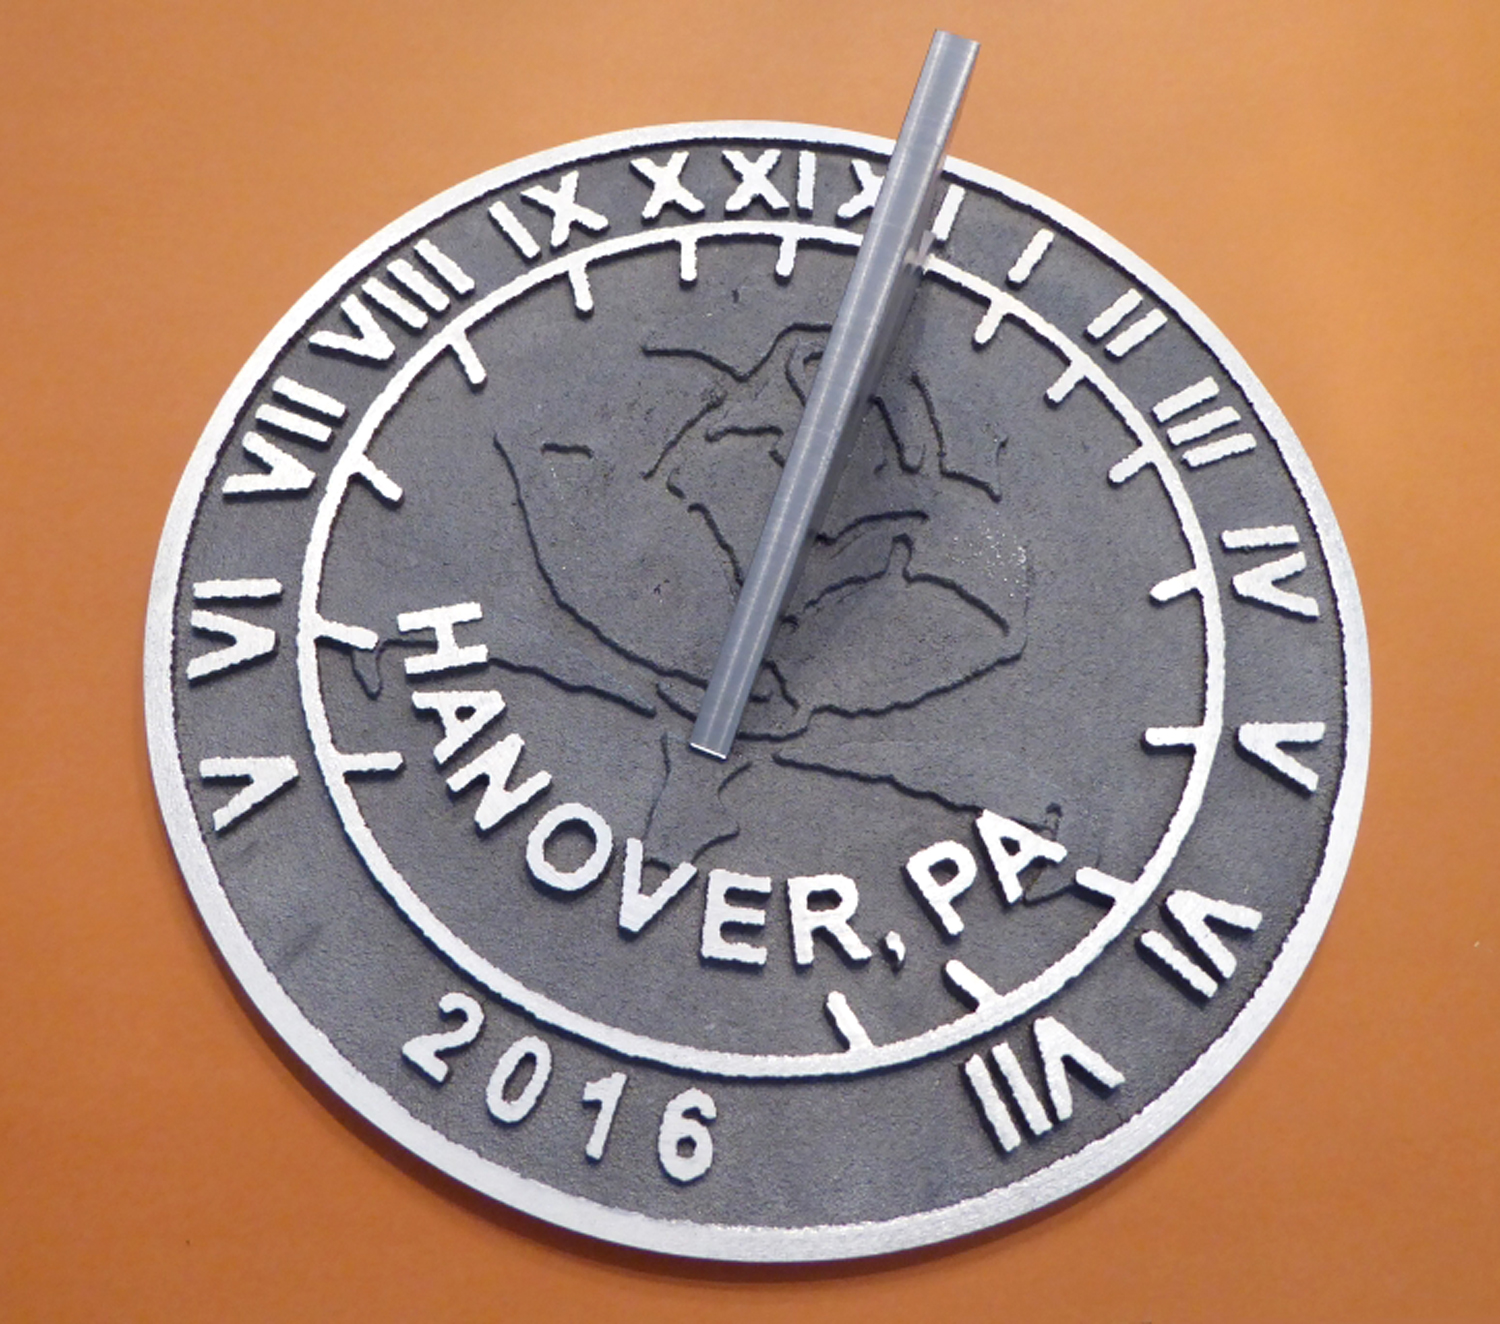 Completed work -courtesy of Chet Roberts/ANCR Sundials